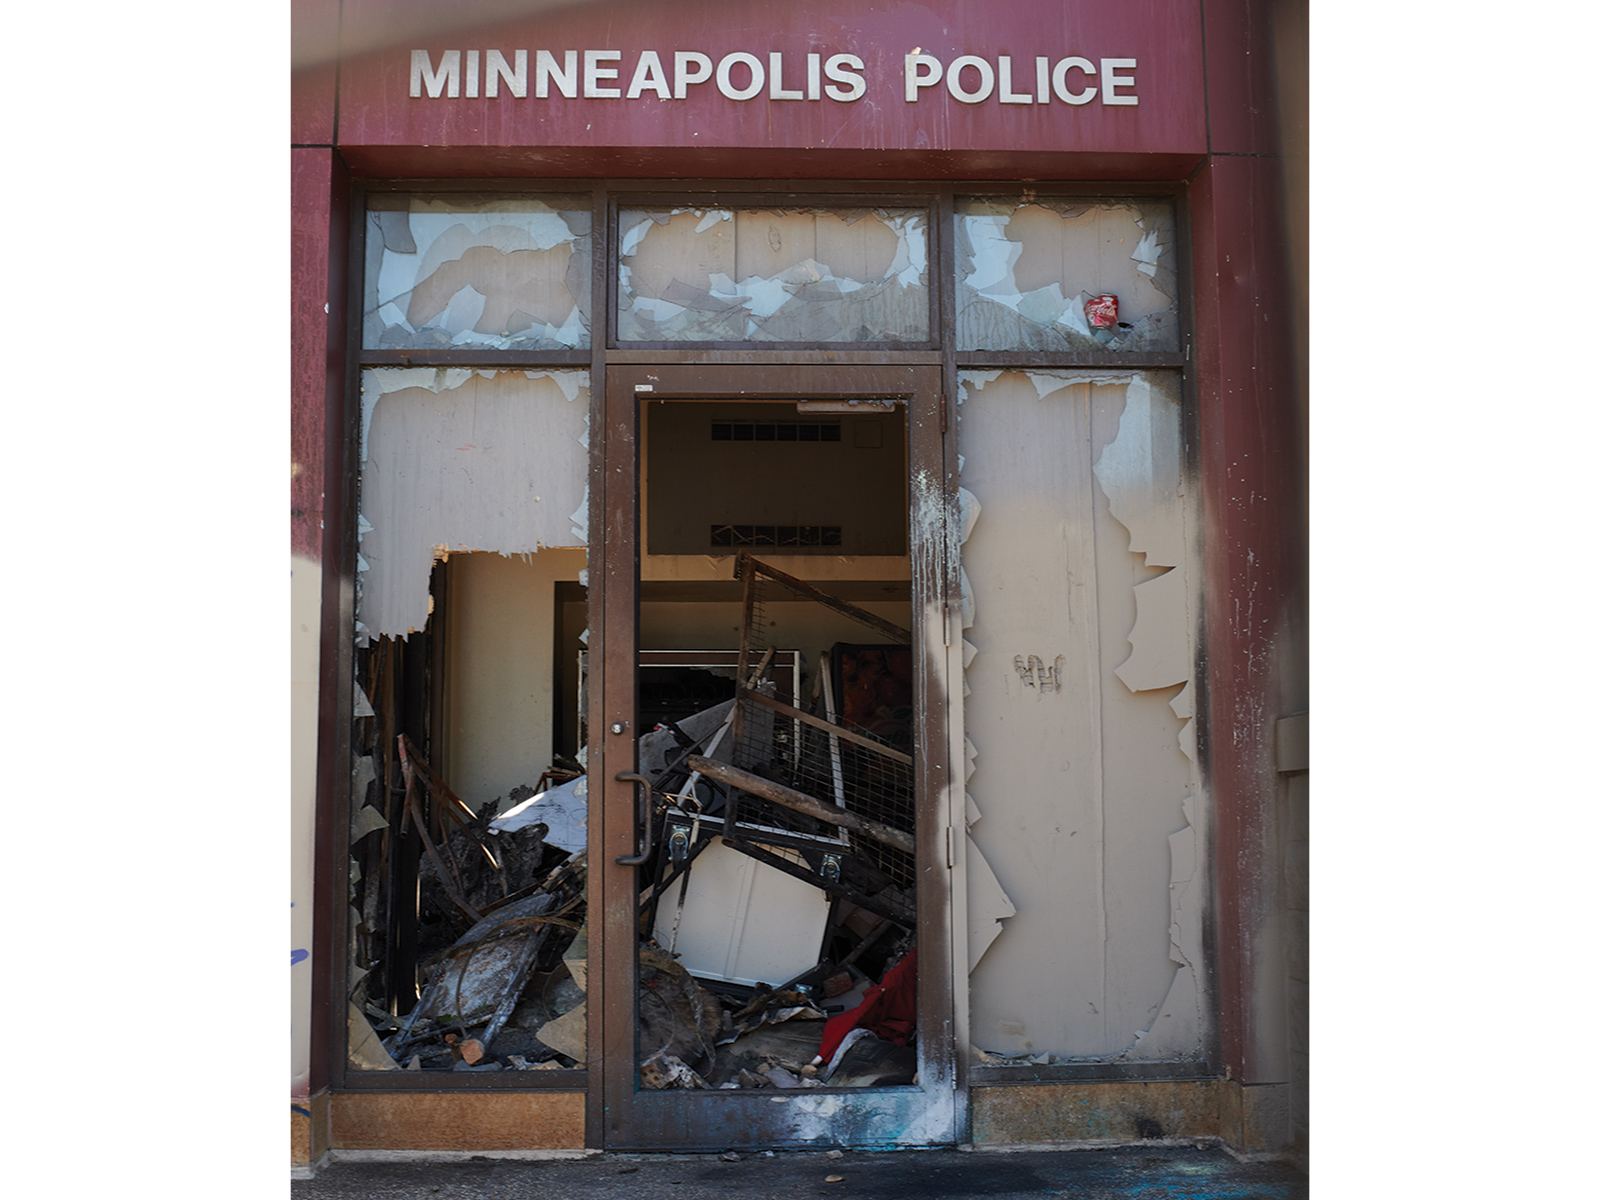 Entrance of a Minneapolis Police Station with the windows broken and rubble in the entryway